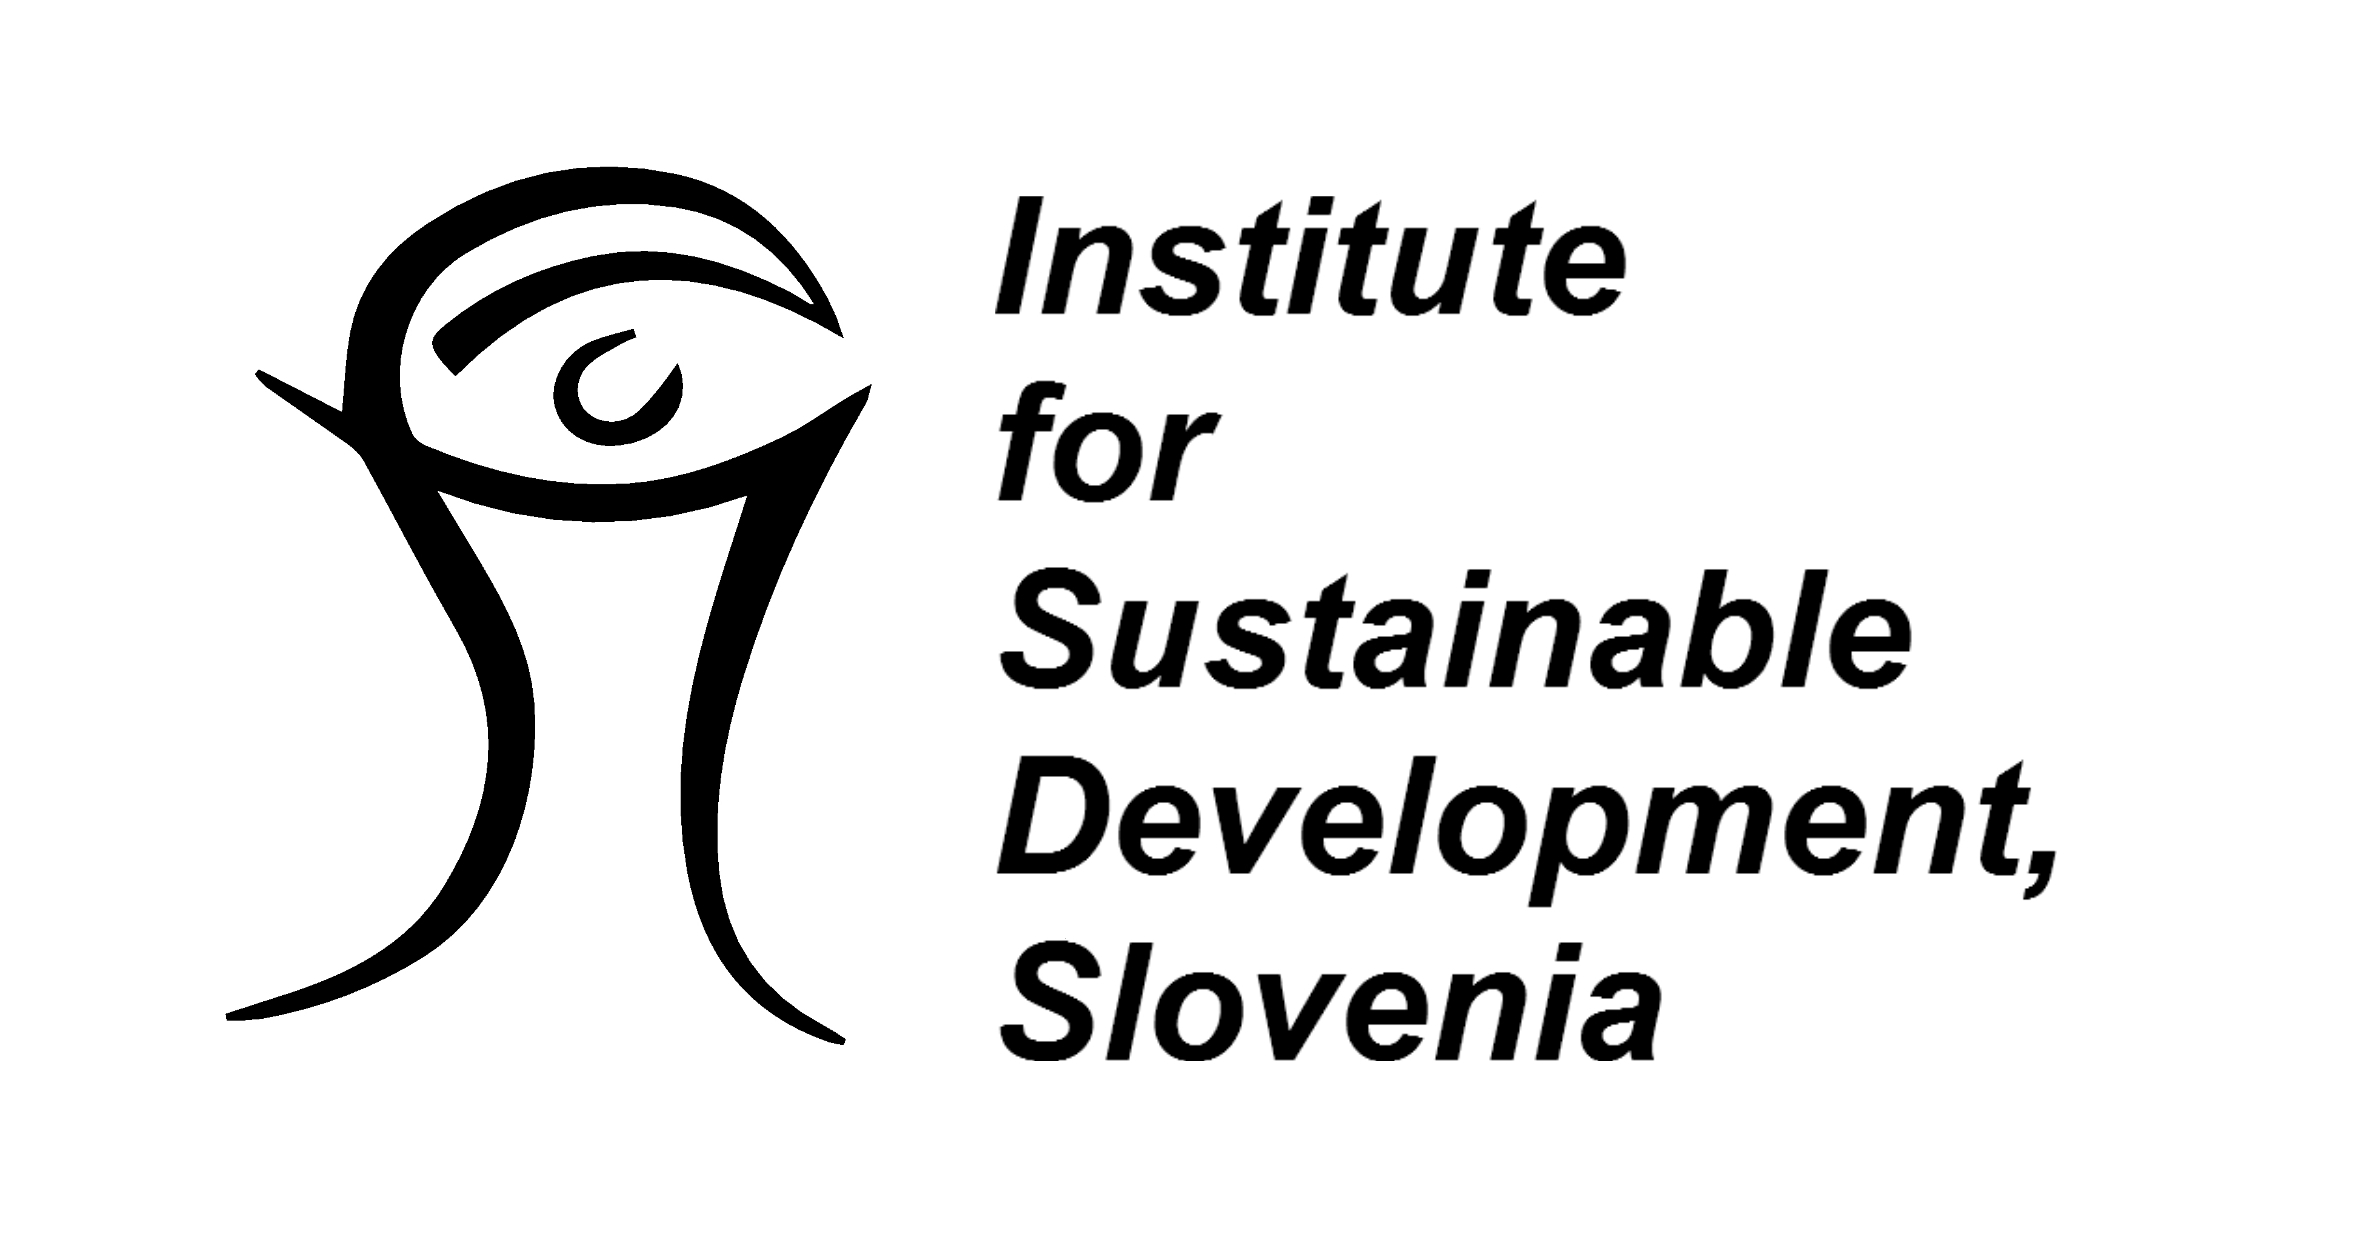 Institute for Sustainable Development, Slovenia